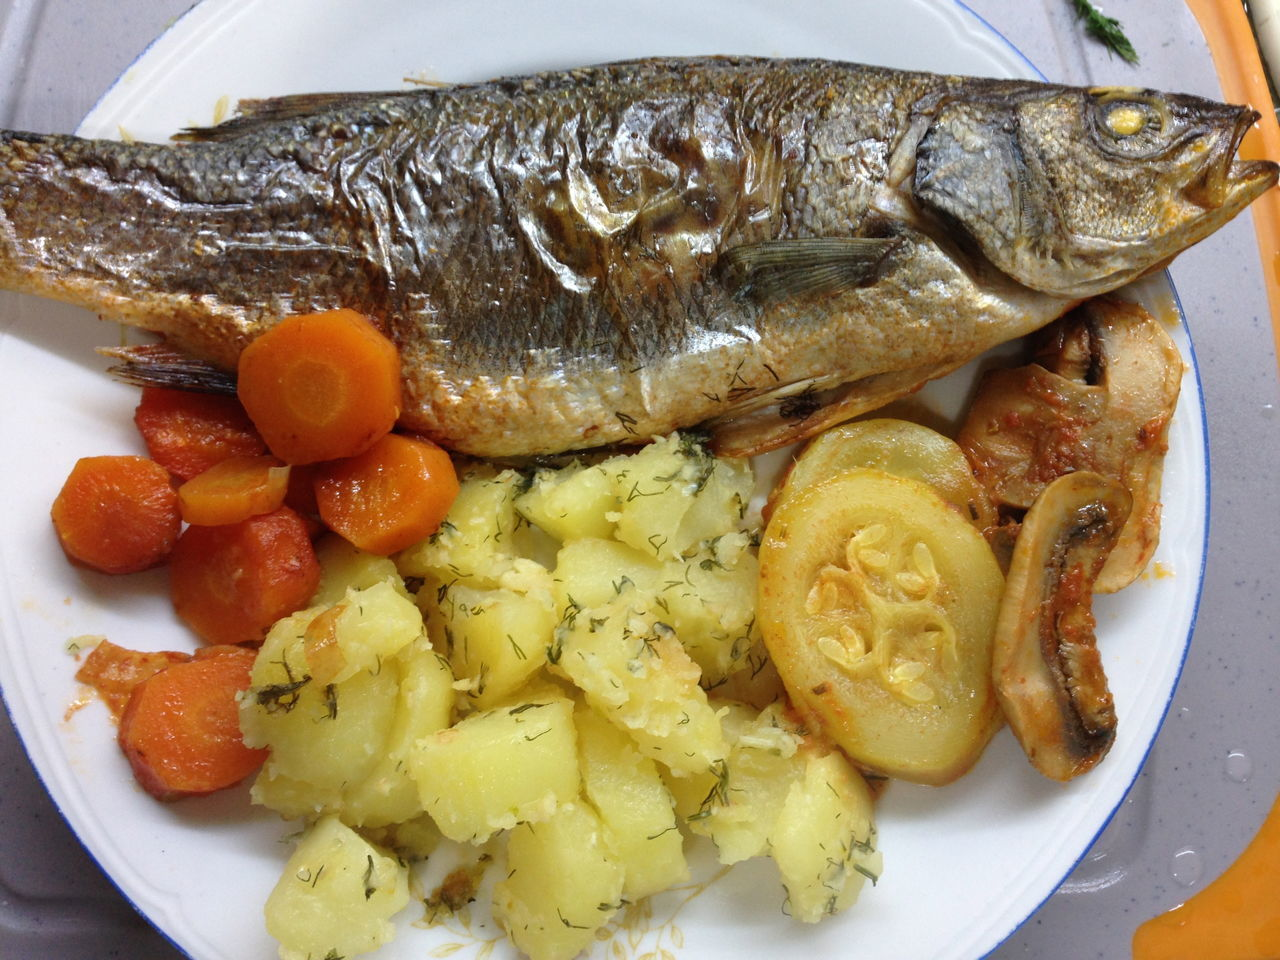 Close-up Day Fish Food Food And Drink Freshness Healthy Eating Indoors  No People Plate Ready-to-eat